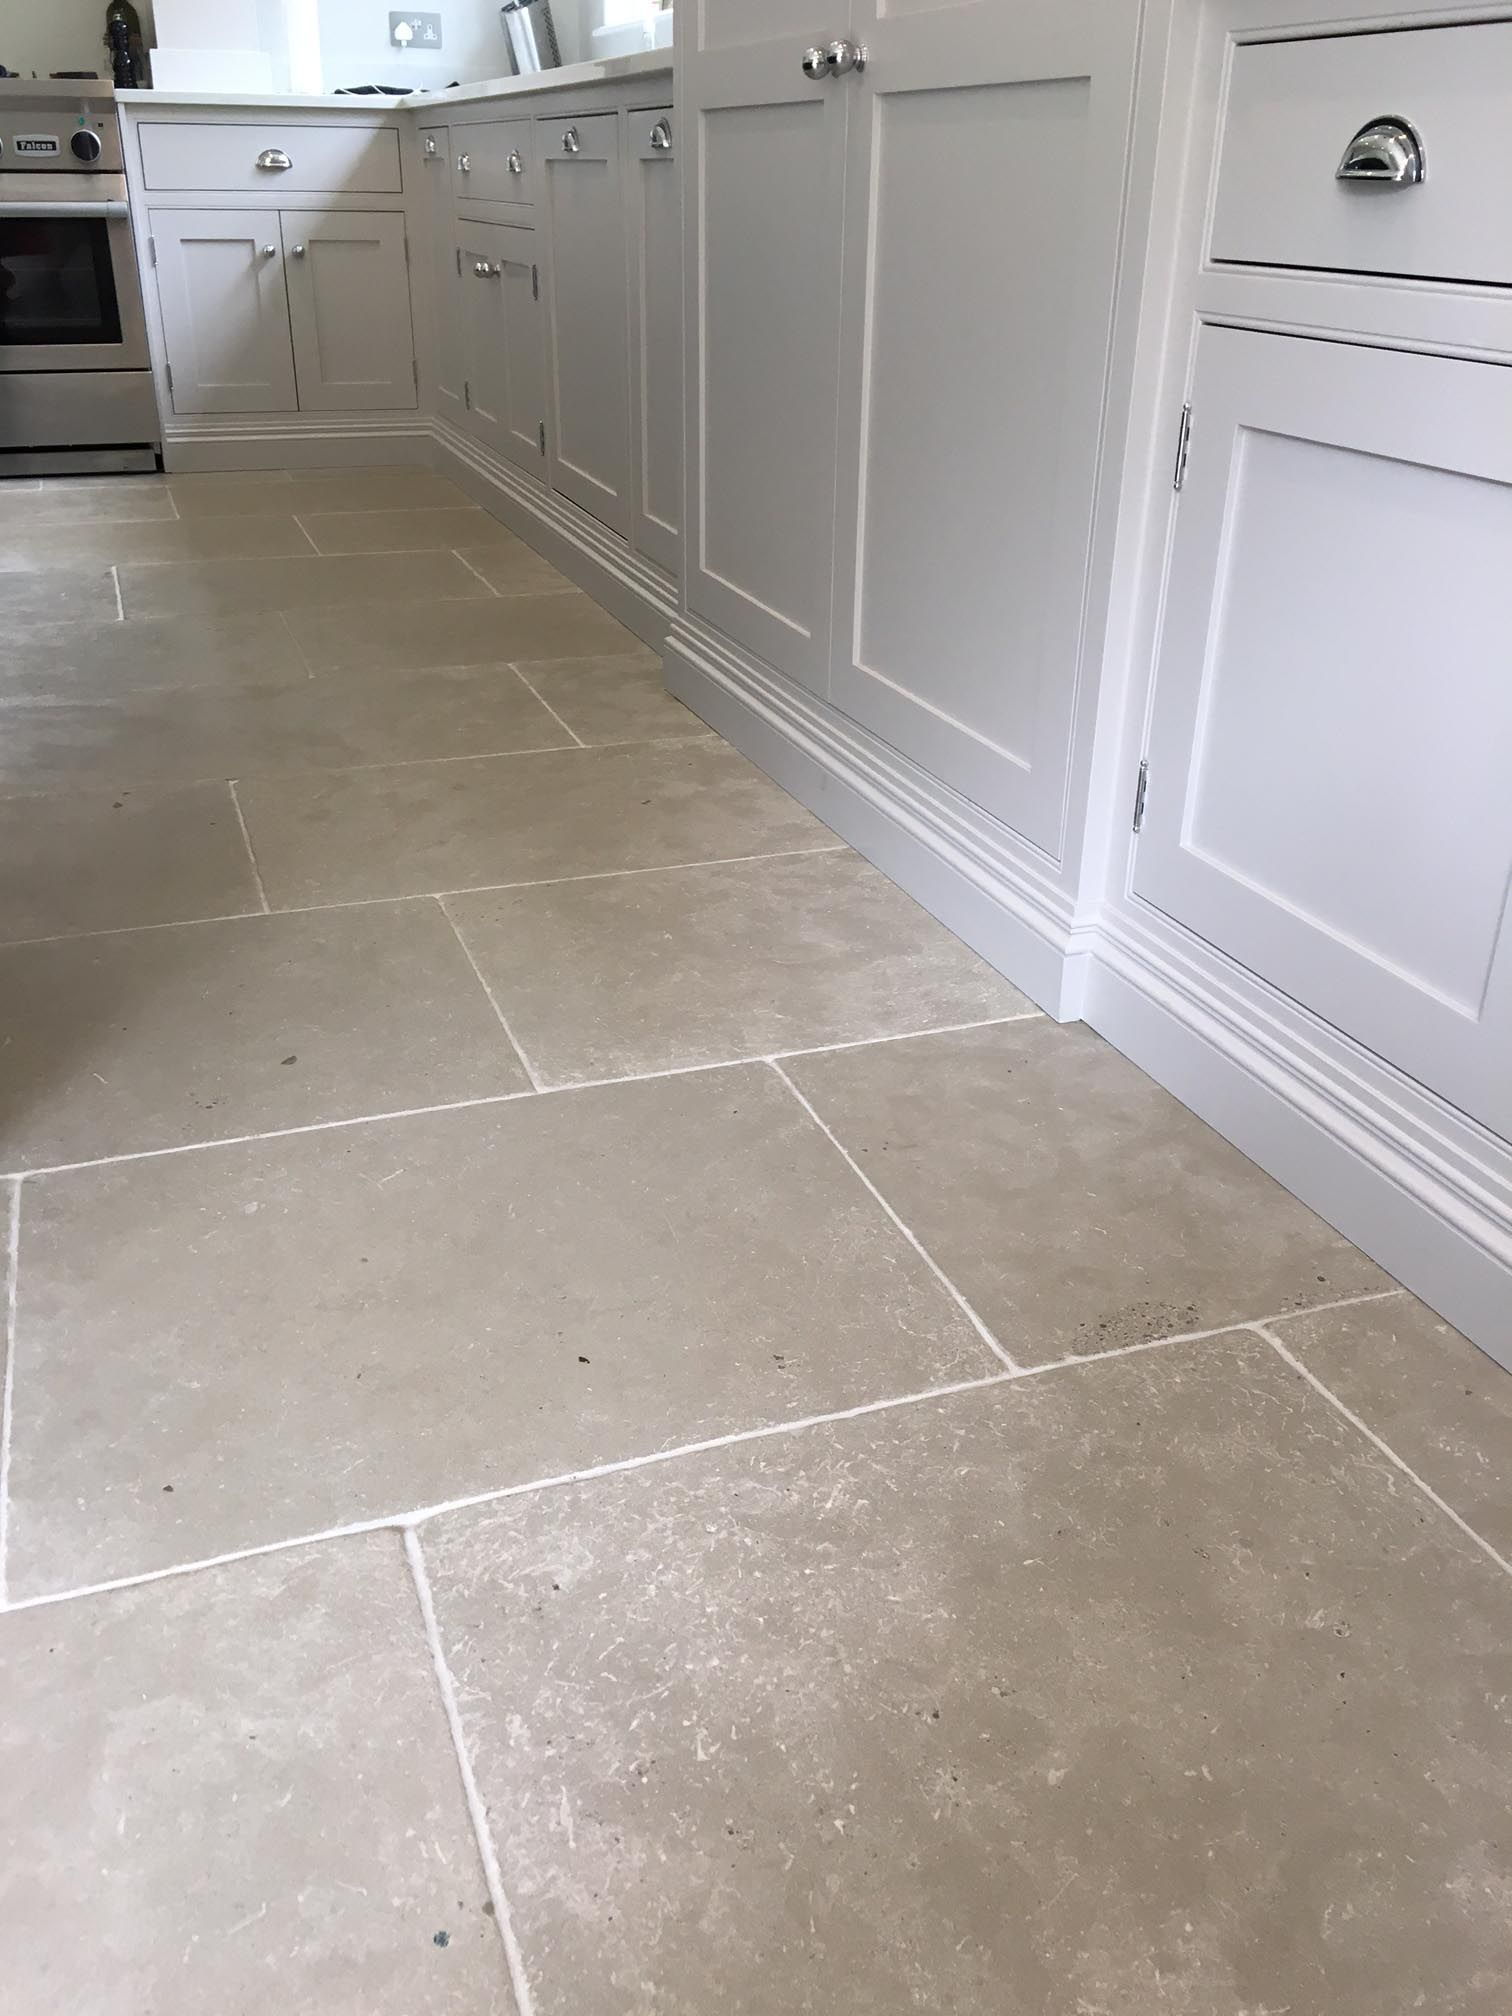 Limestone Flooring In Kitchen Paris Grey Limestone Tiles For A Durable Kitchen Floor Light Grey